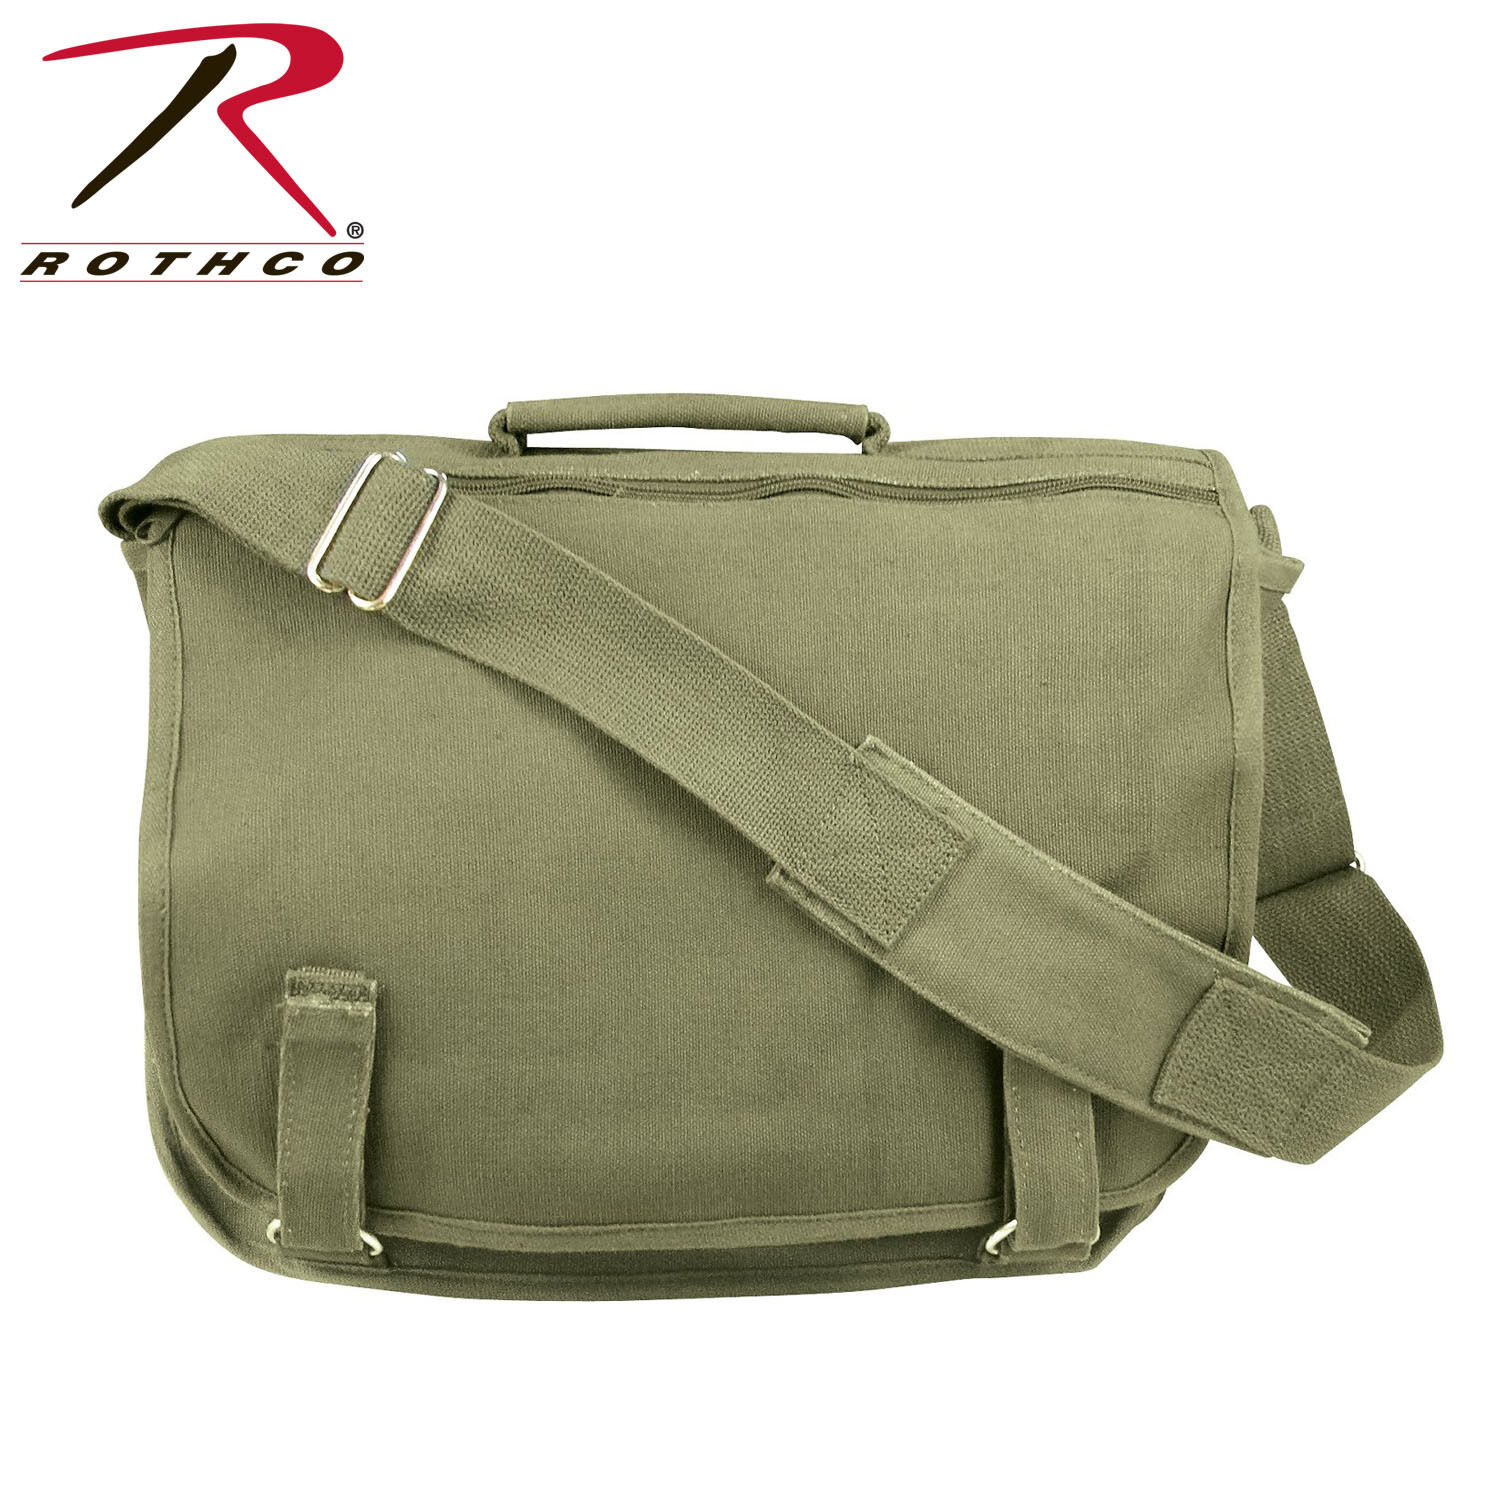 f3c1455f482 ... Shoulder Messenger Bag Convertible Universal Vintage Canvas Laptop  Backpack Rucksack and  Rothco Brown European School Bag 8918 eBay official  photos ...